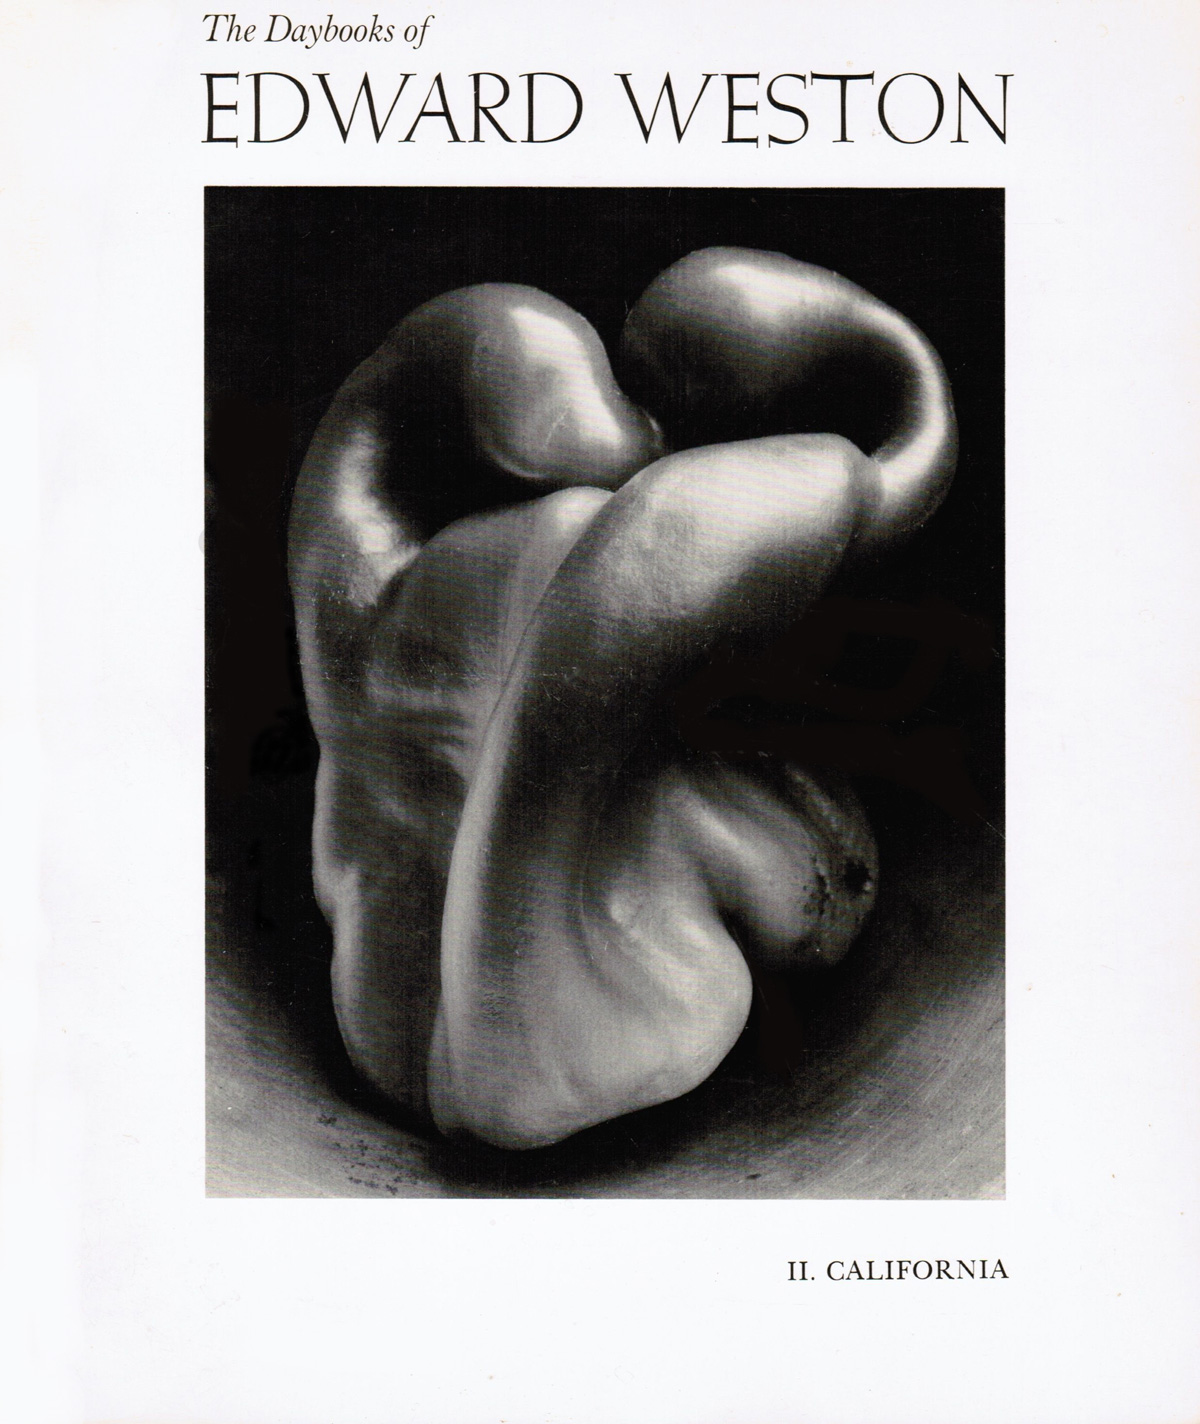 Edward Weston on the Most Fruitful Attitude Toward Life, Art, and Other People